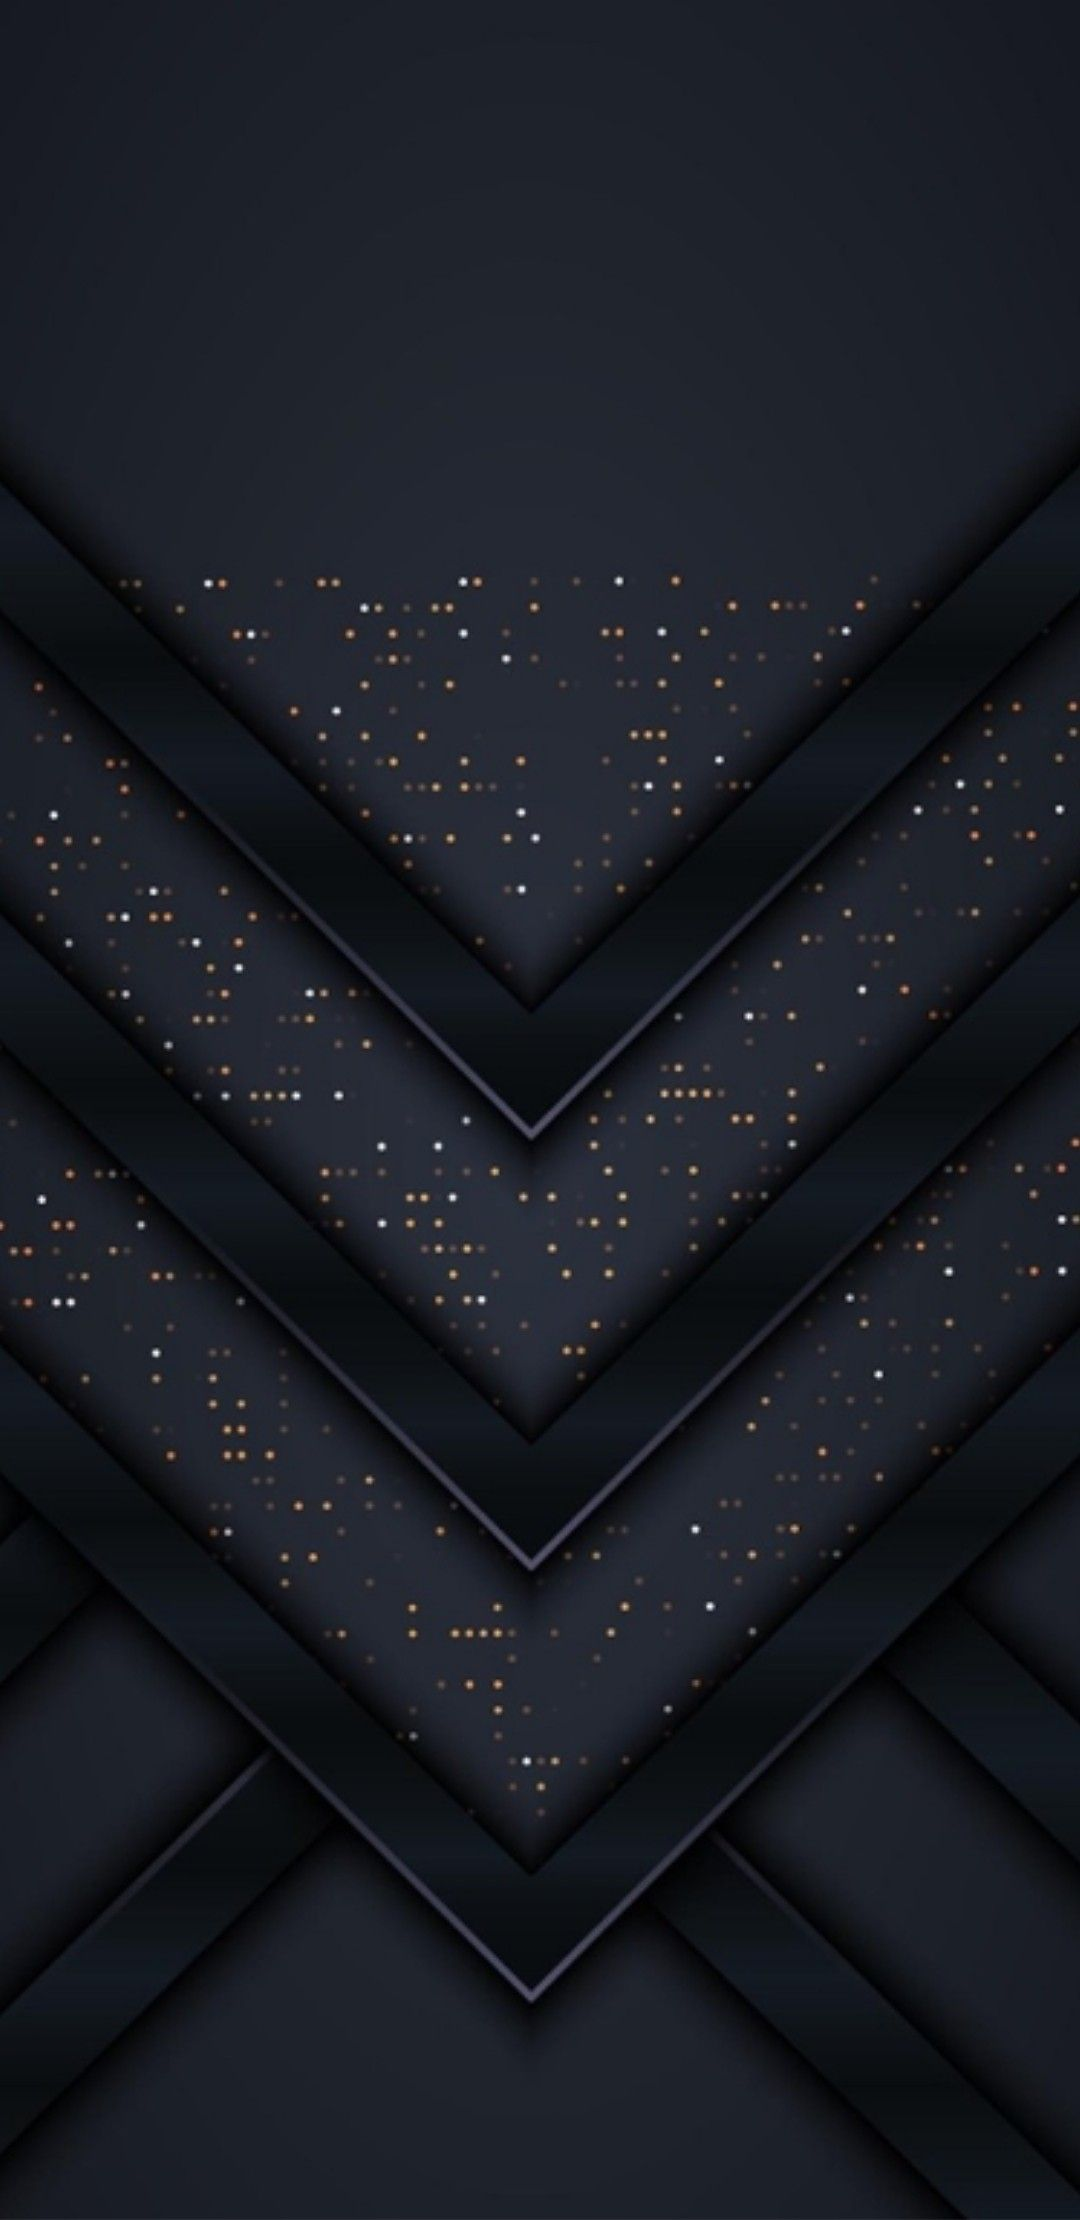 List of Cool Grey And Black Wallpaper Iphone for iPhone 11 Pro This Month